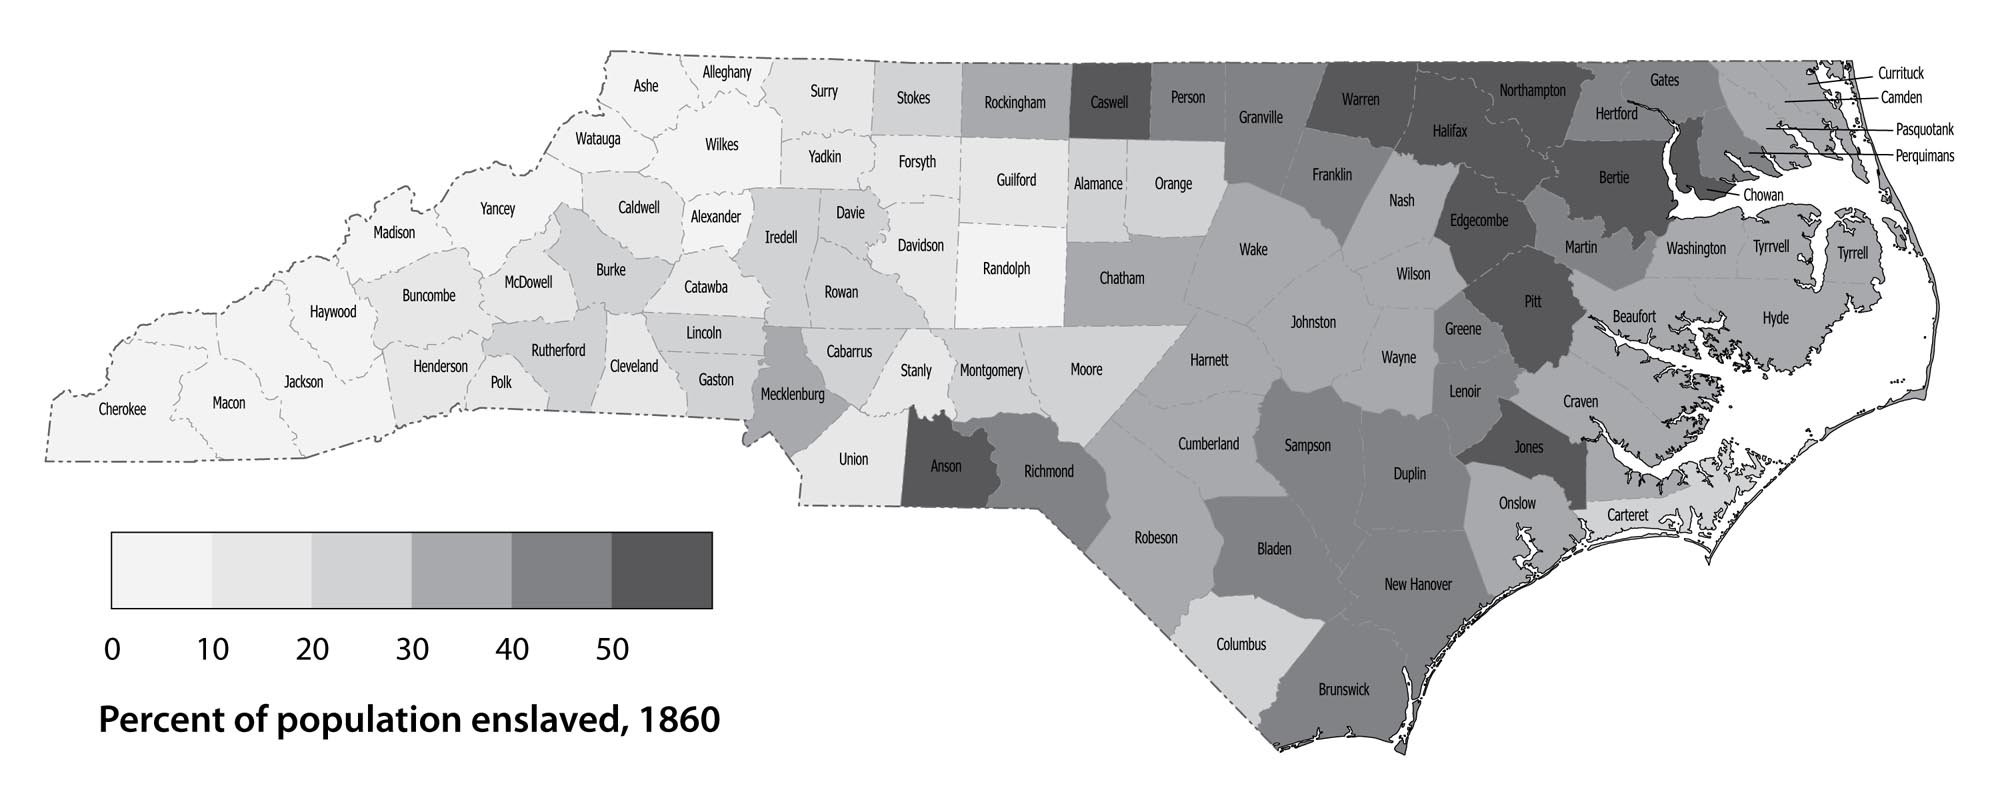 North Carolina population: Percent enslaved by county, 1860